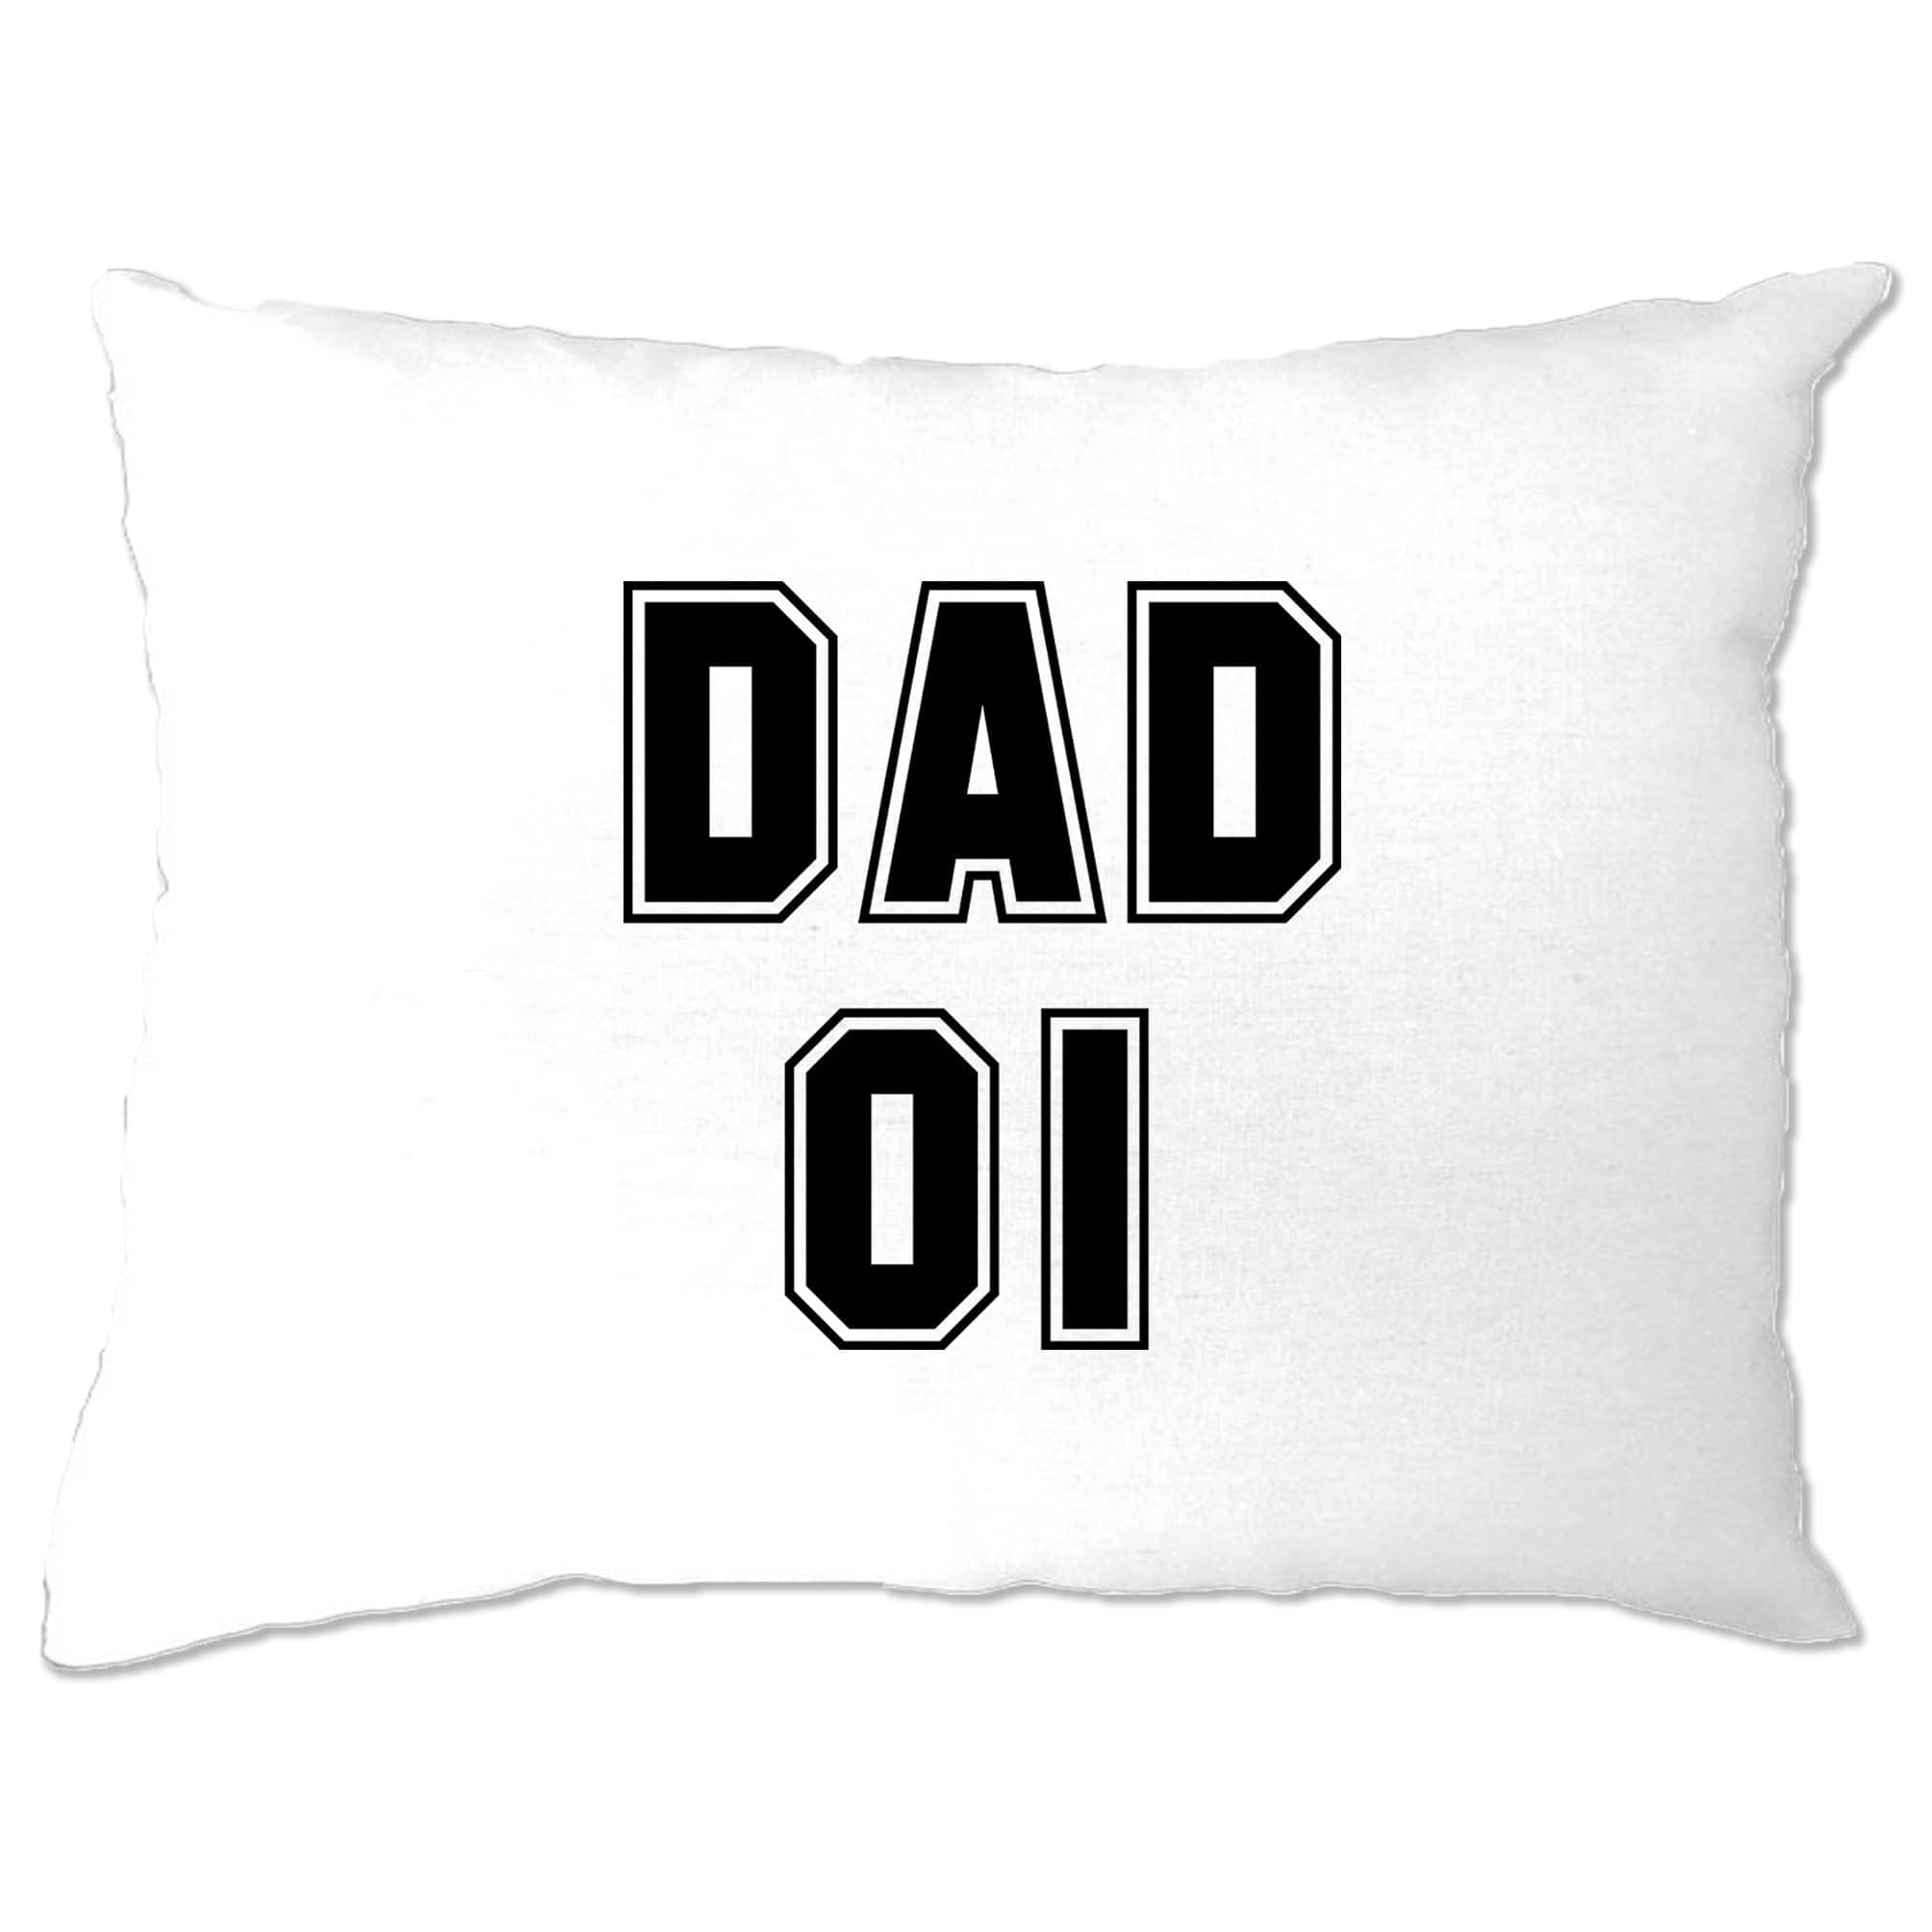 Father's Day Pillow Case Dad, 01 Number One Slogan